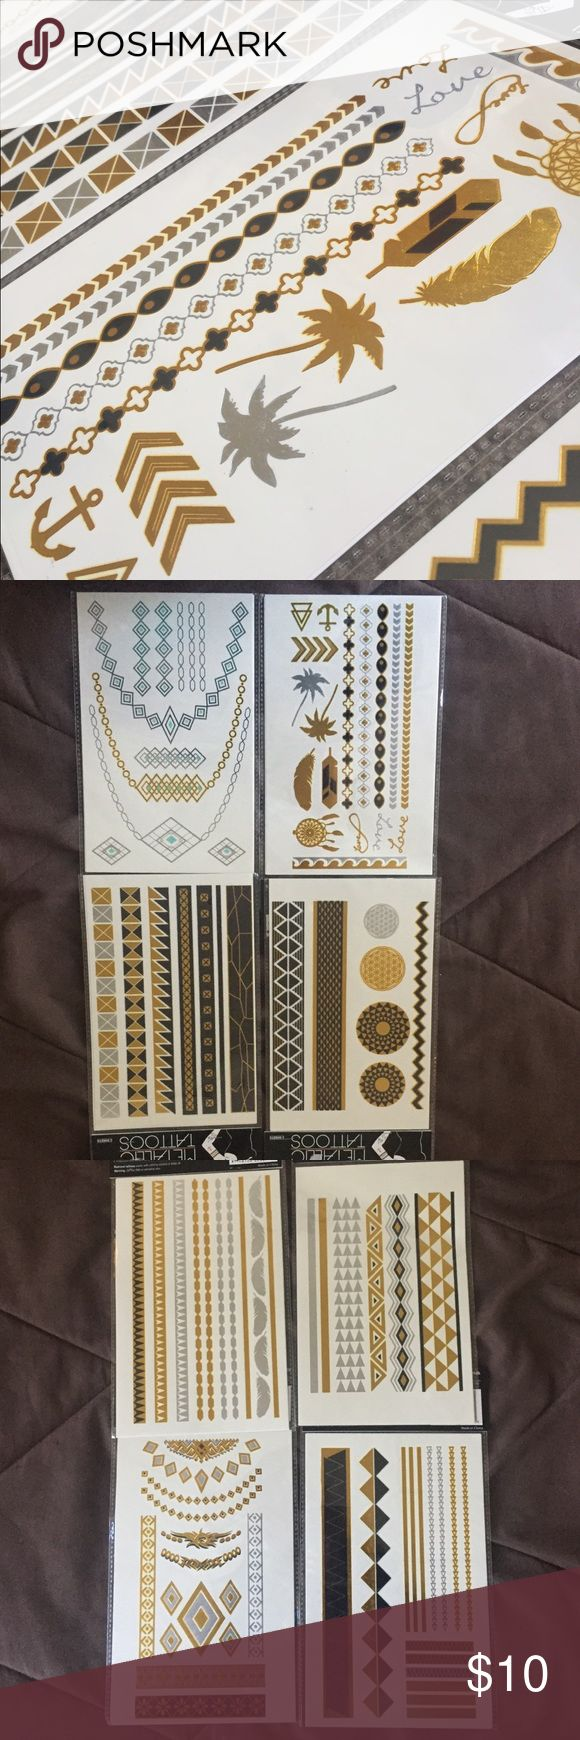 Metallic Music Festival Tattoos- Lot of four!! All new, includes four packages with two sheets each, retail $8 per pack!! See pictures for exact tattoos. Super cute. Temporary. -- Accessories